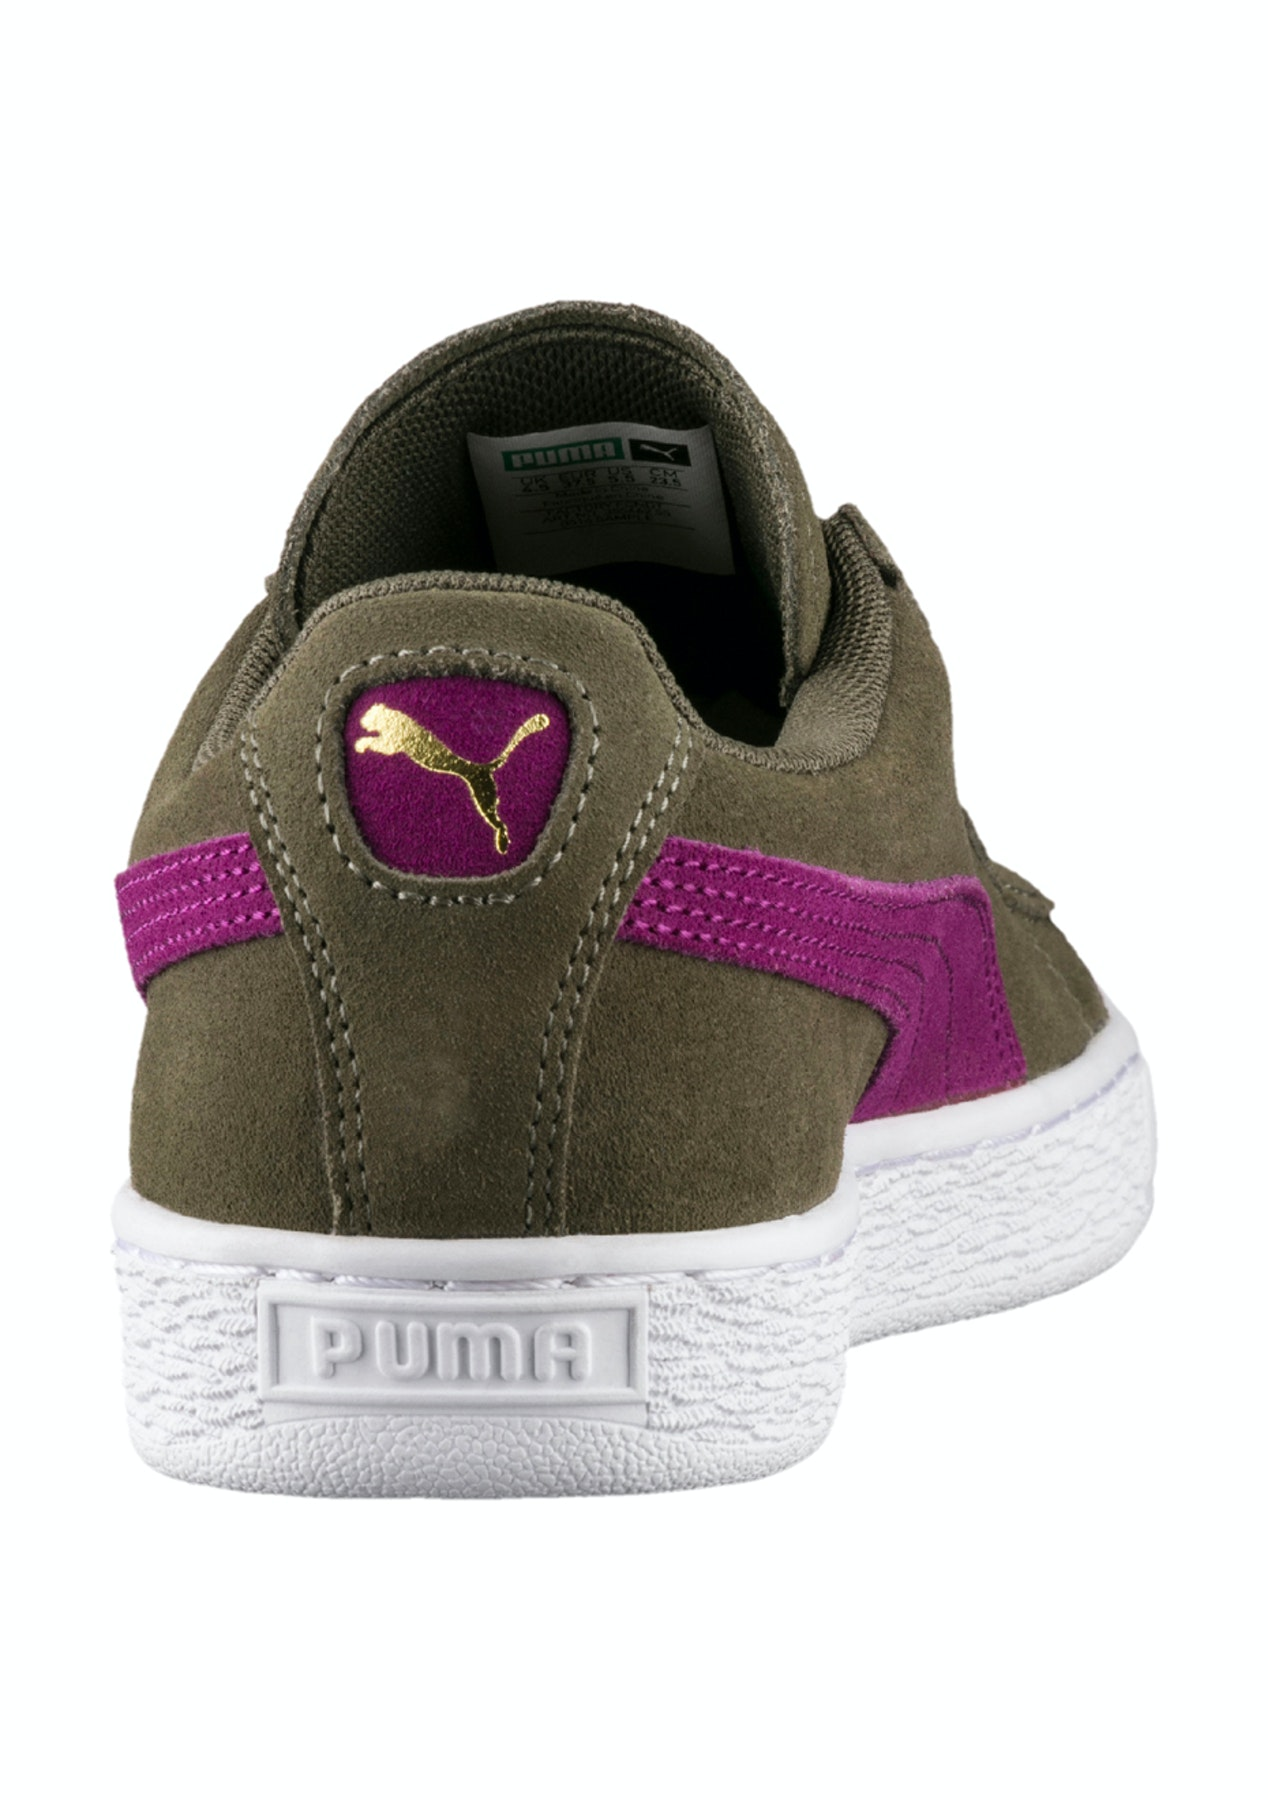 17f34c21de5 Puma Womens - Suede Classic - Olive Night - Free Shipping Street Shoes +  Slides - Onceit